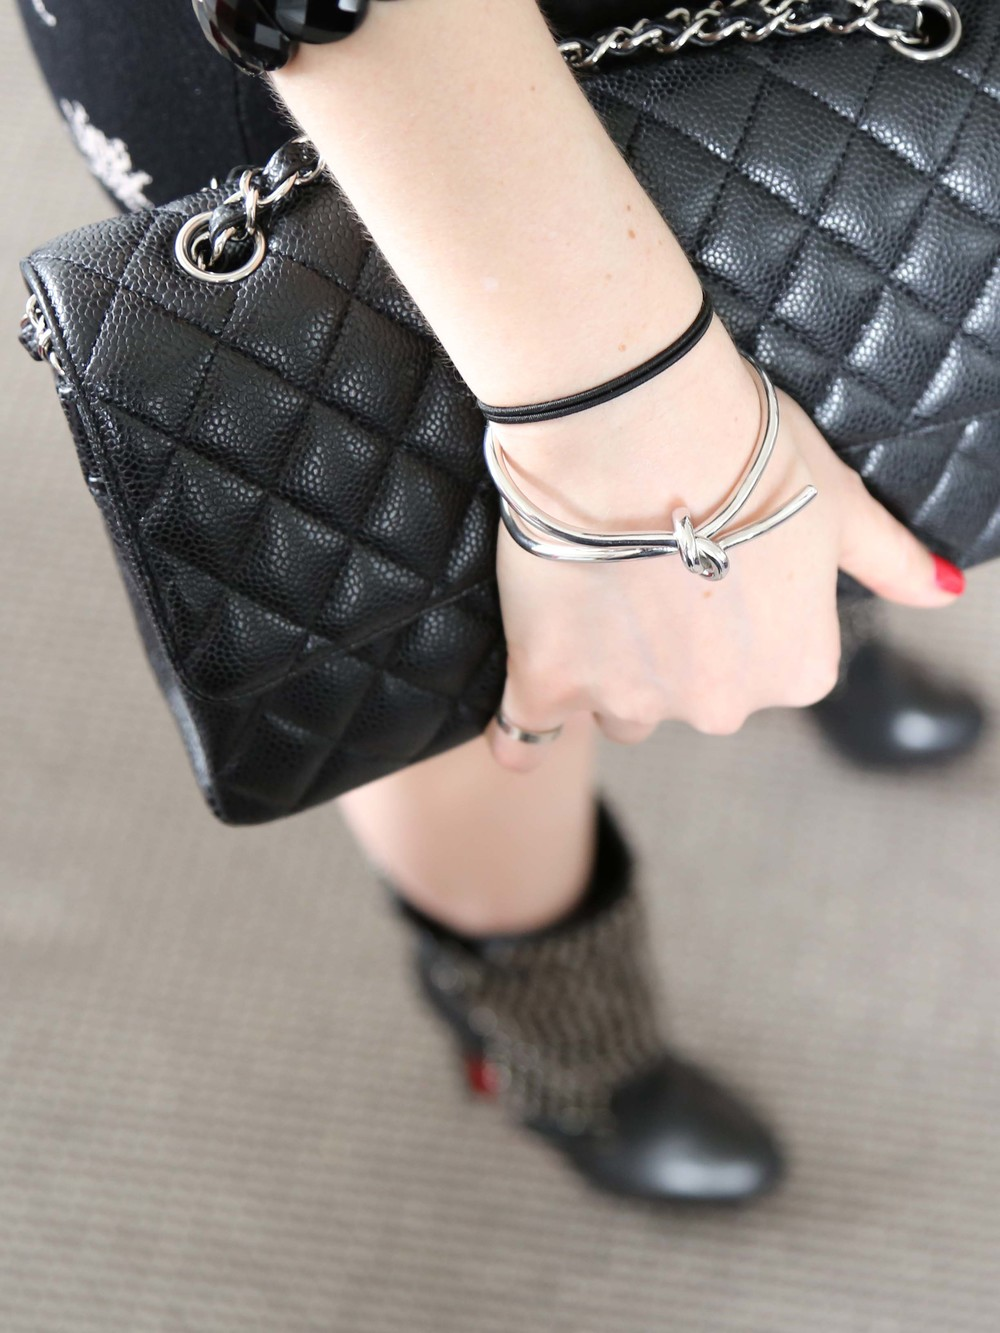 McQ Insect Print Dress, Chanel Bag, Silver Knot Cuff, Onyx Bracelet, Louboutin Studded Boots